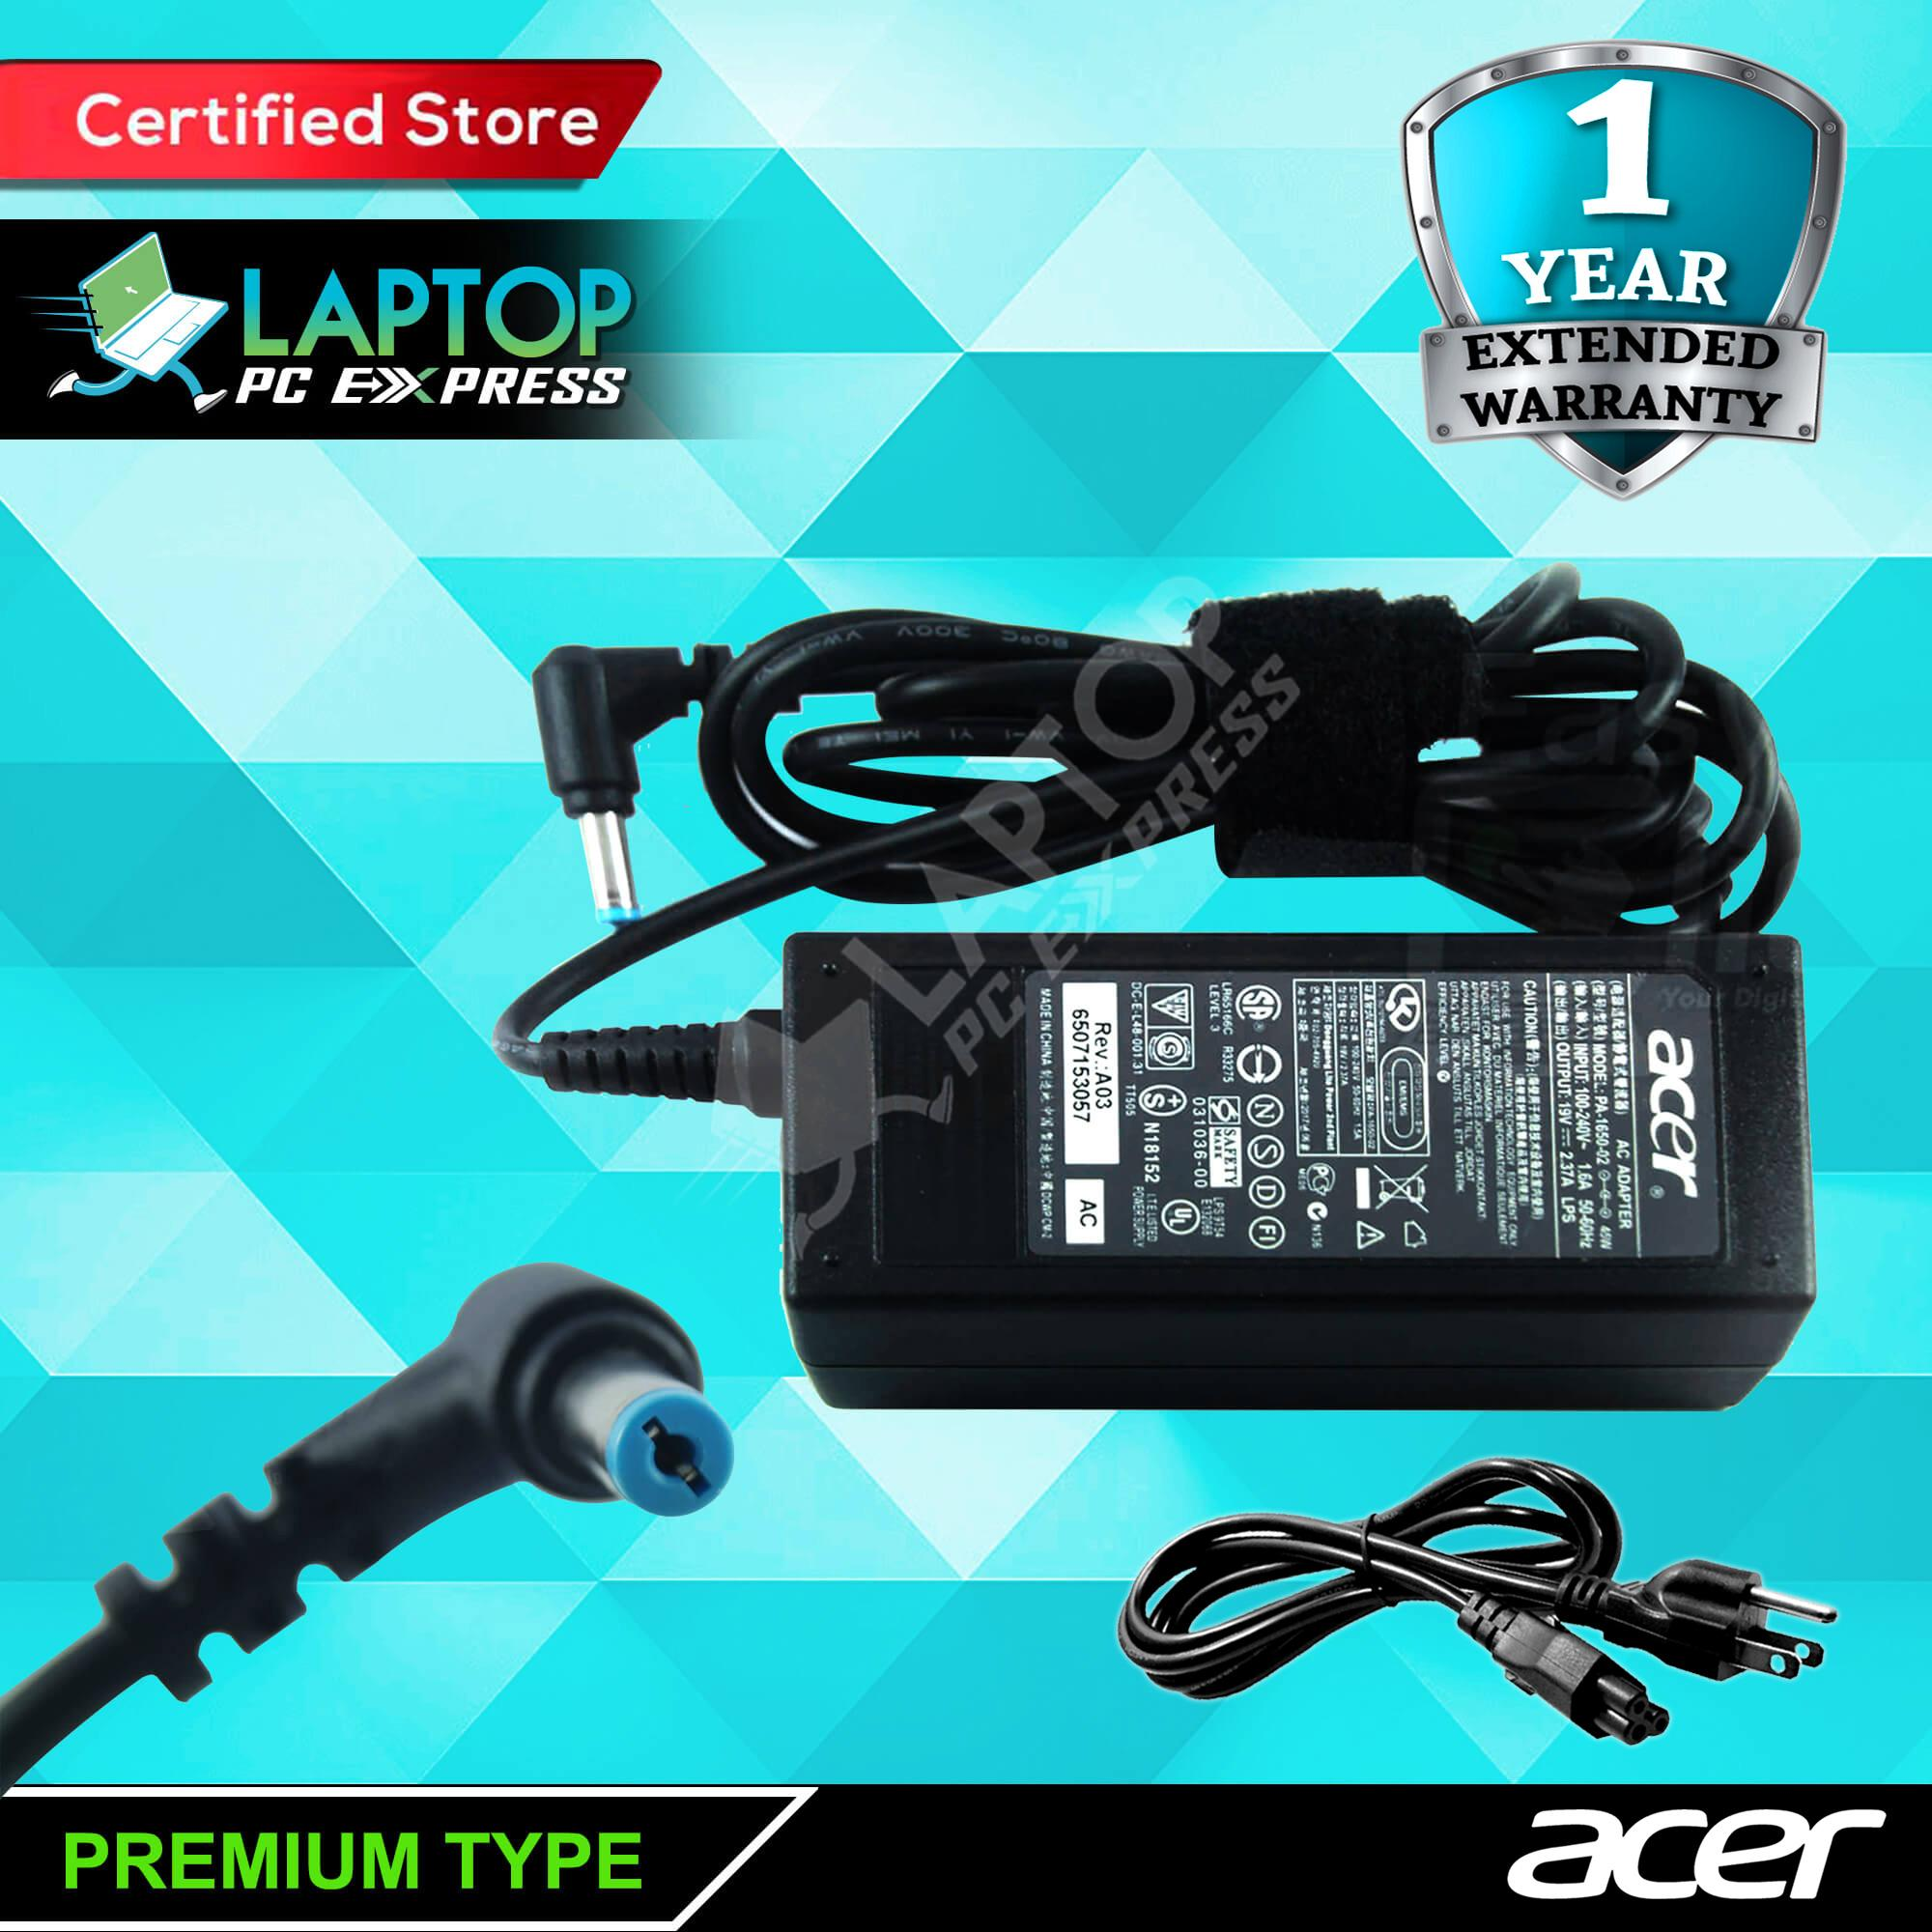 ACER TRAVELMATE P276-MG TBD BY OEM DRIVERS FOR PC